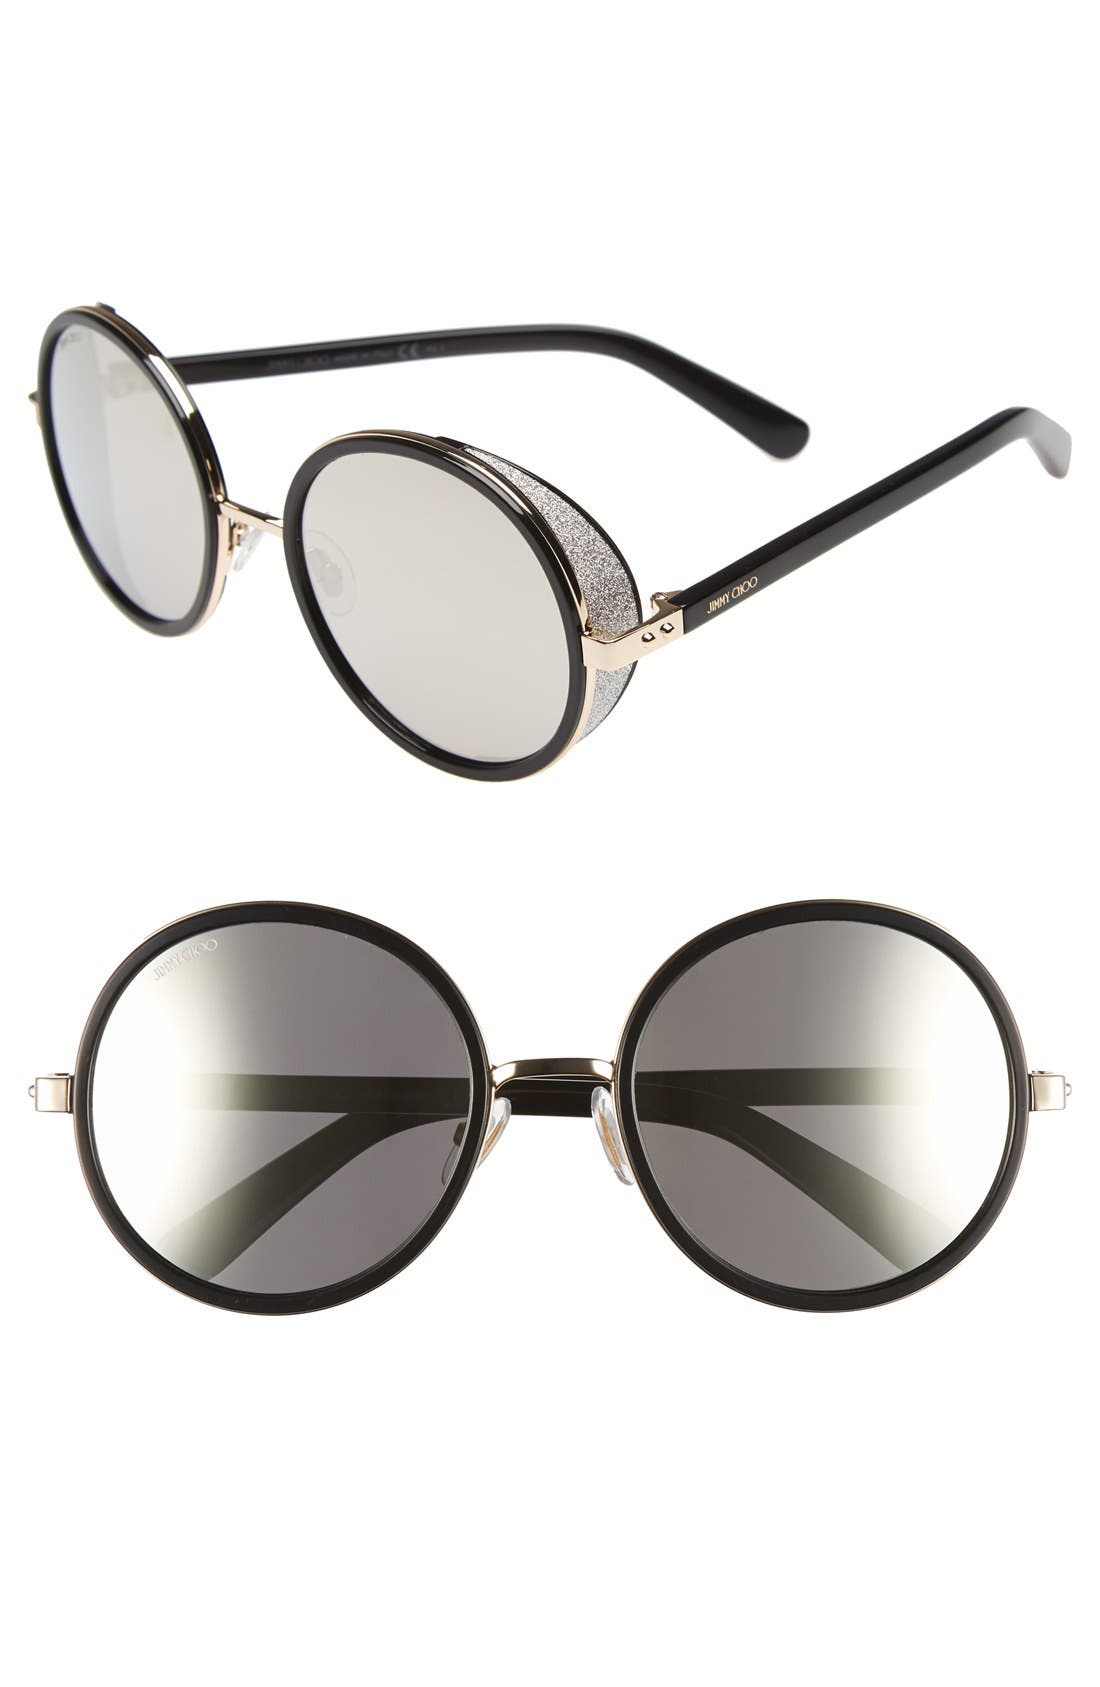 JIMMY CHOO, 'Andies' 54mm Round Sunglasses, Main thumbnail 1, color, 711